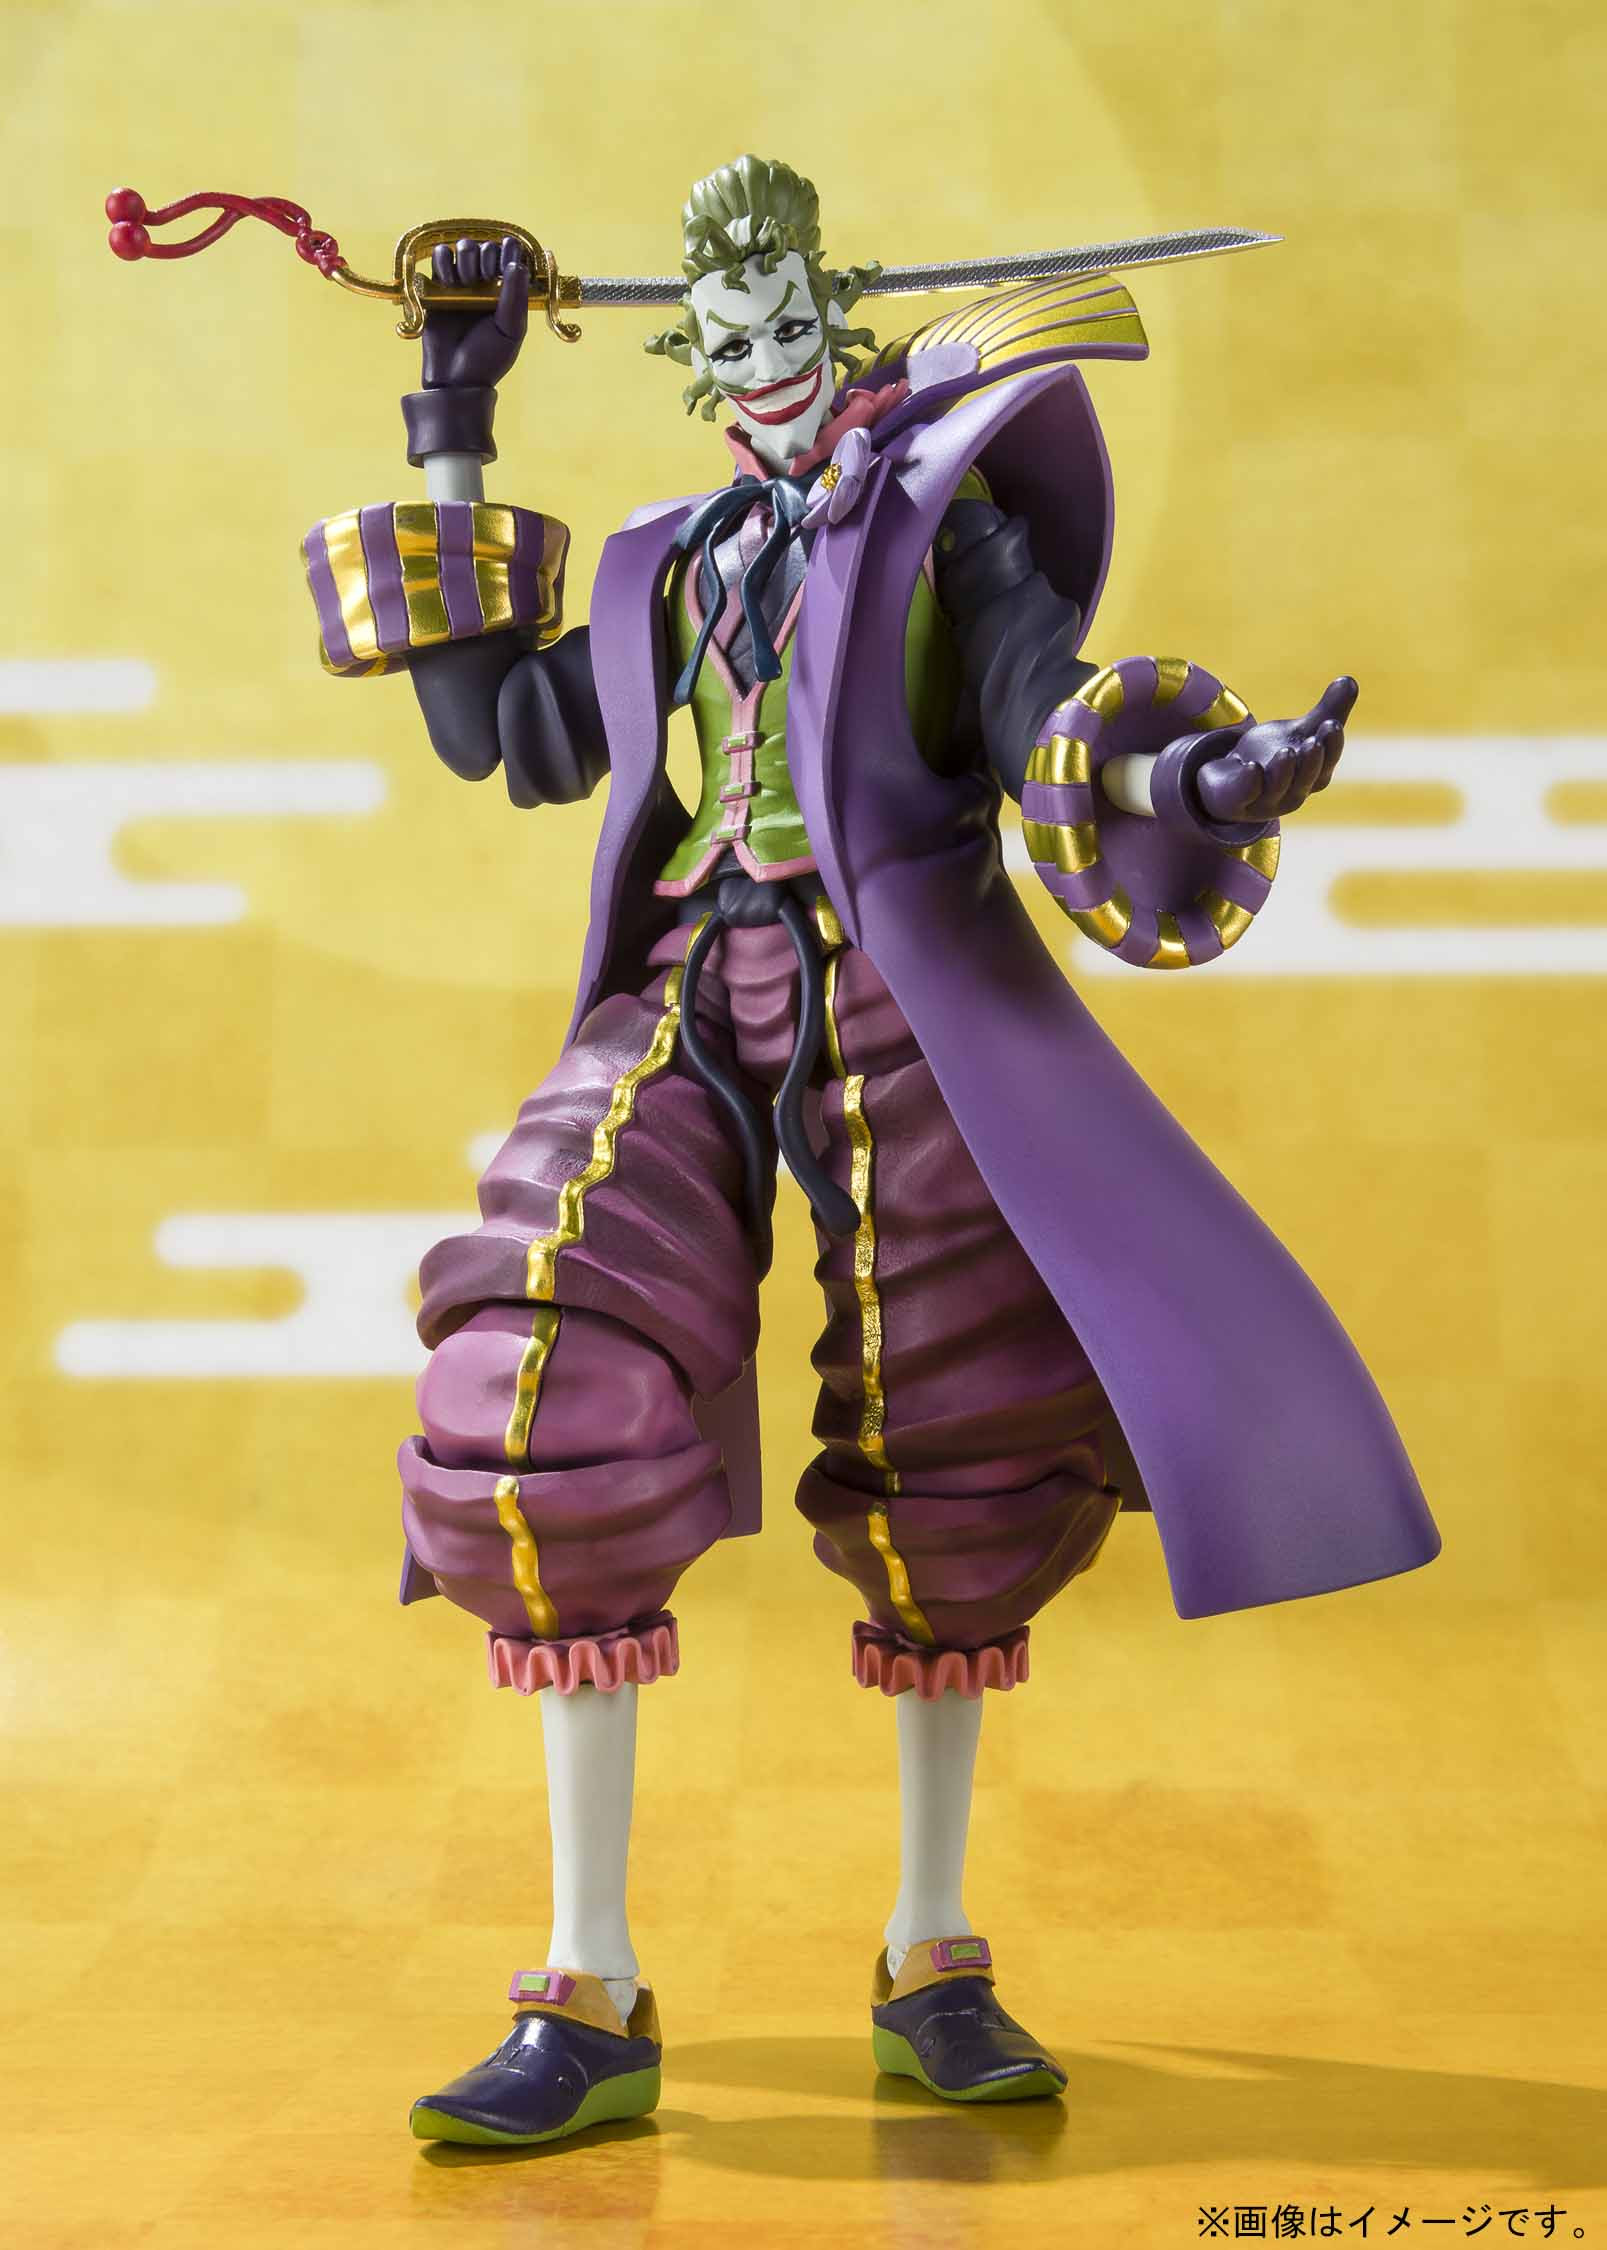 [Pre-Order] S.H. Figuarts: Ninja Batman - The Joker, Demon King Of The Sixth Heaven